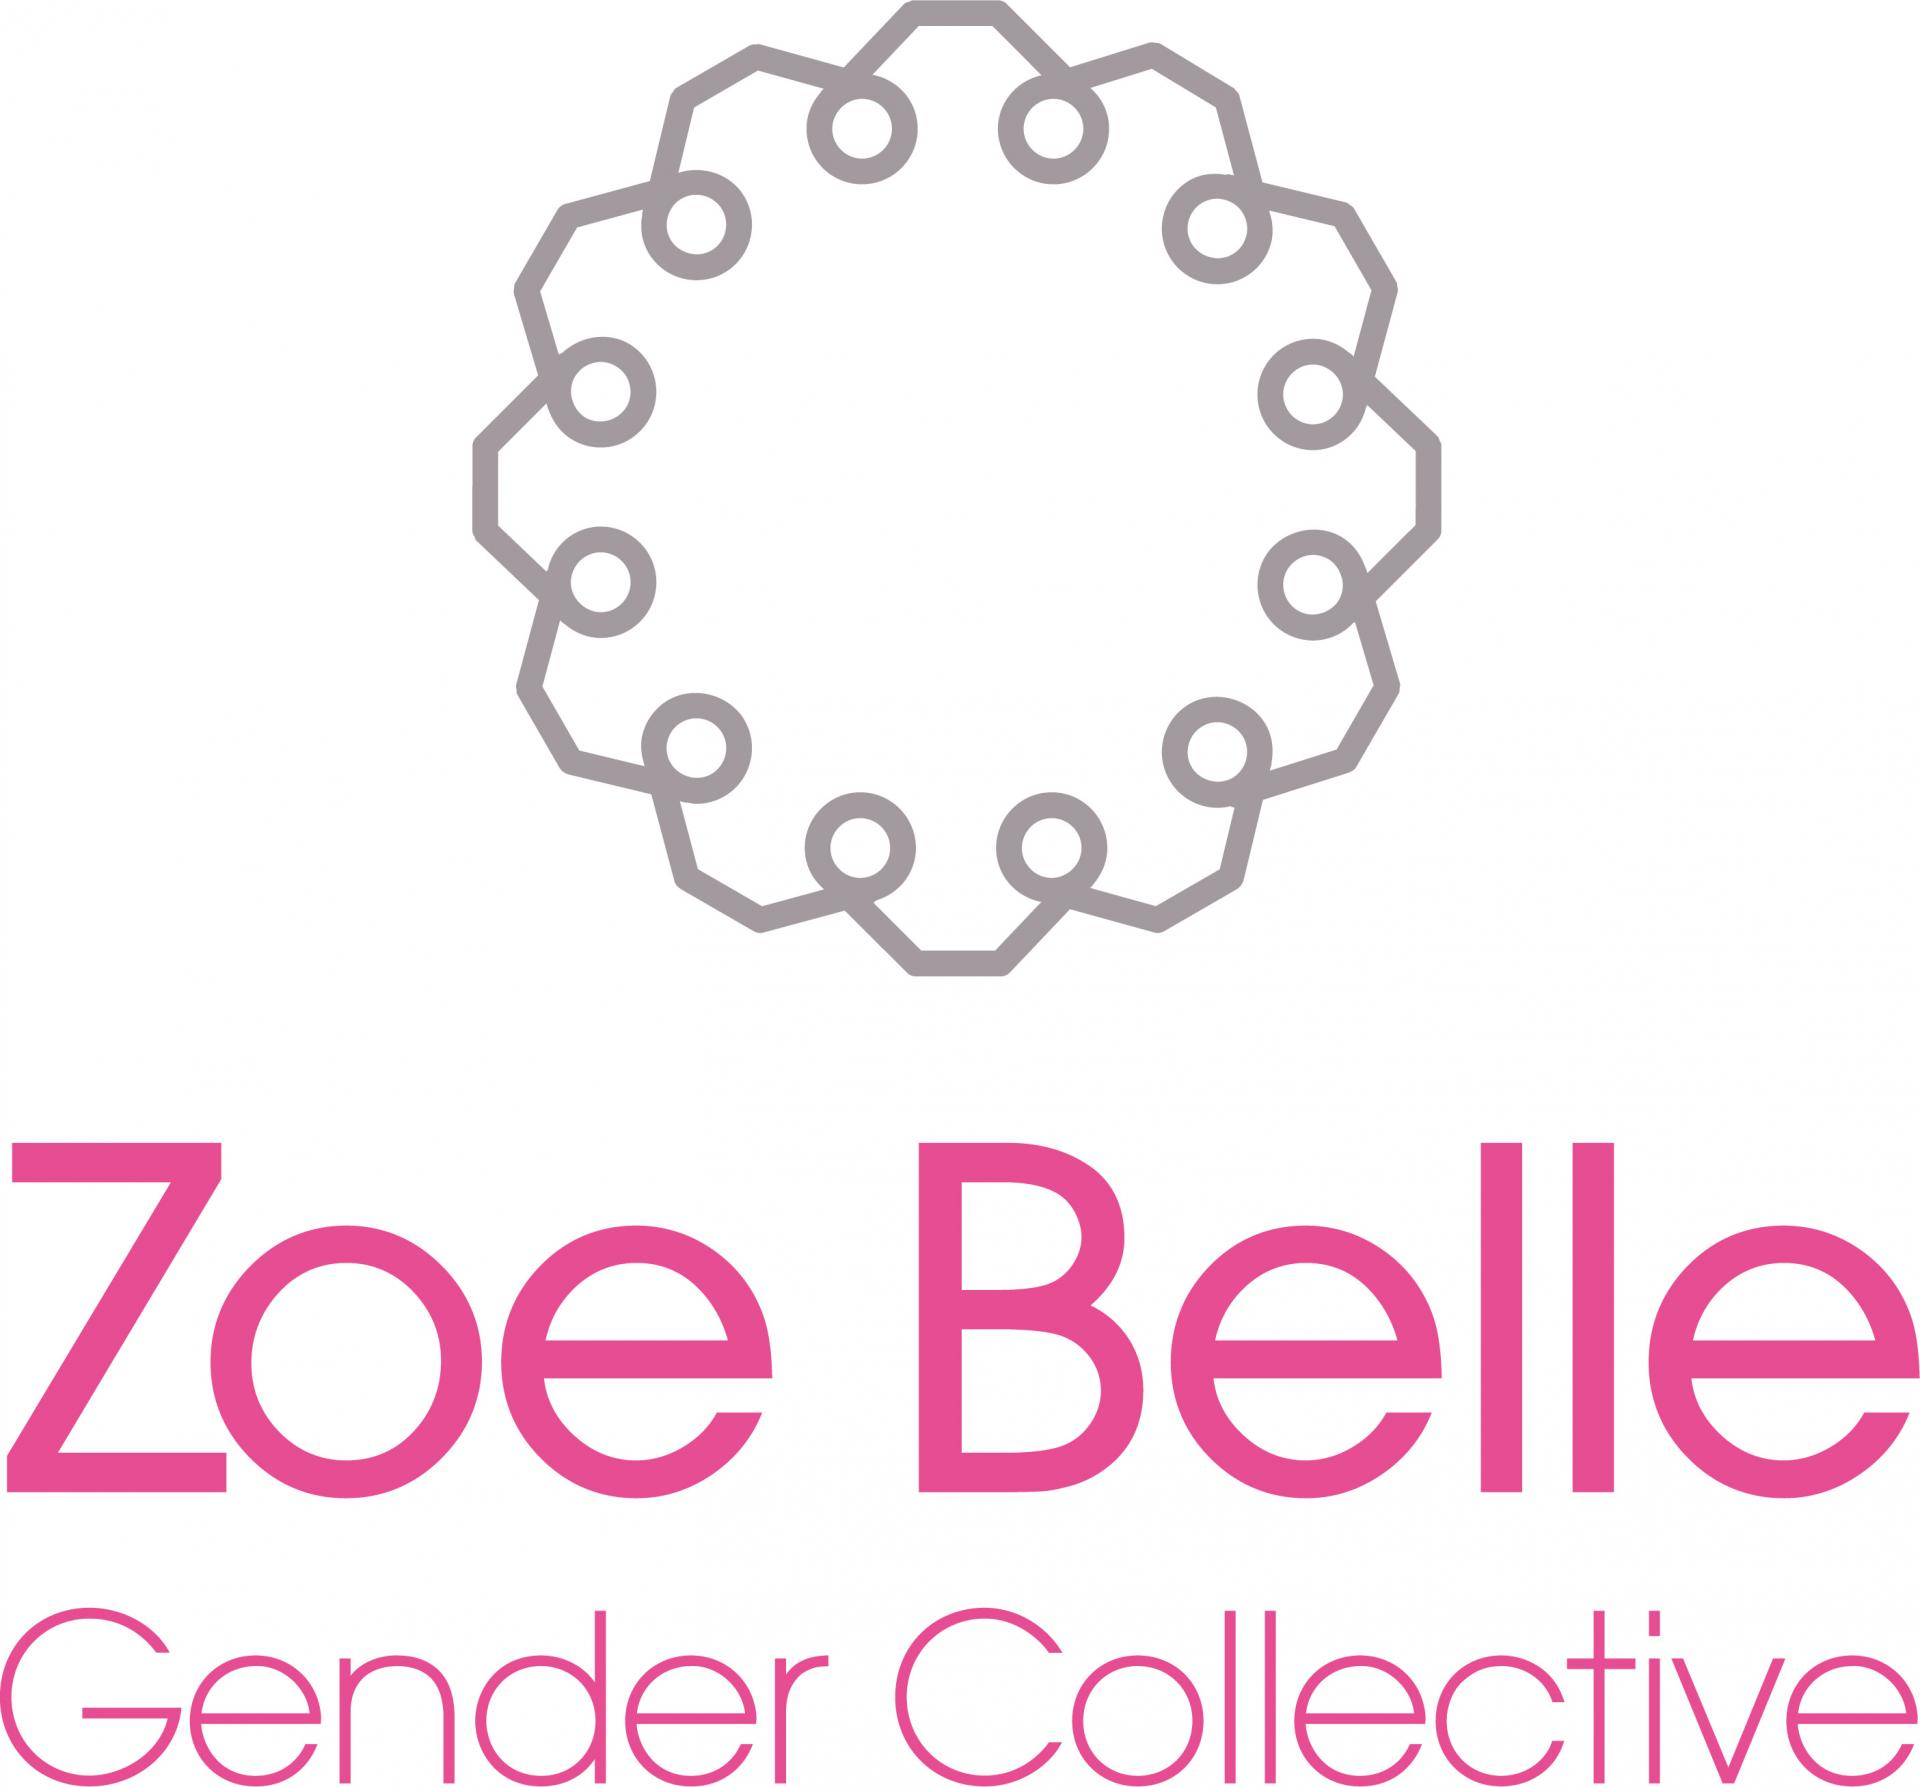 Zoe Belle Gender Collective